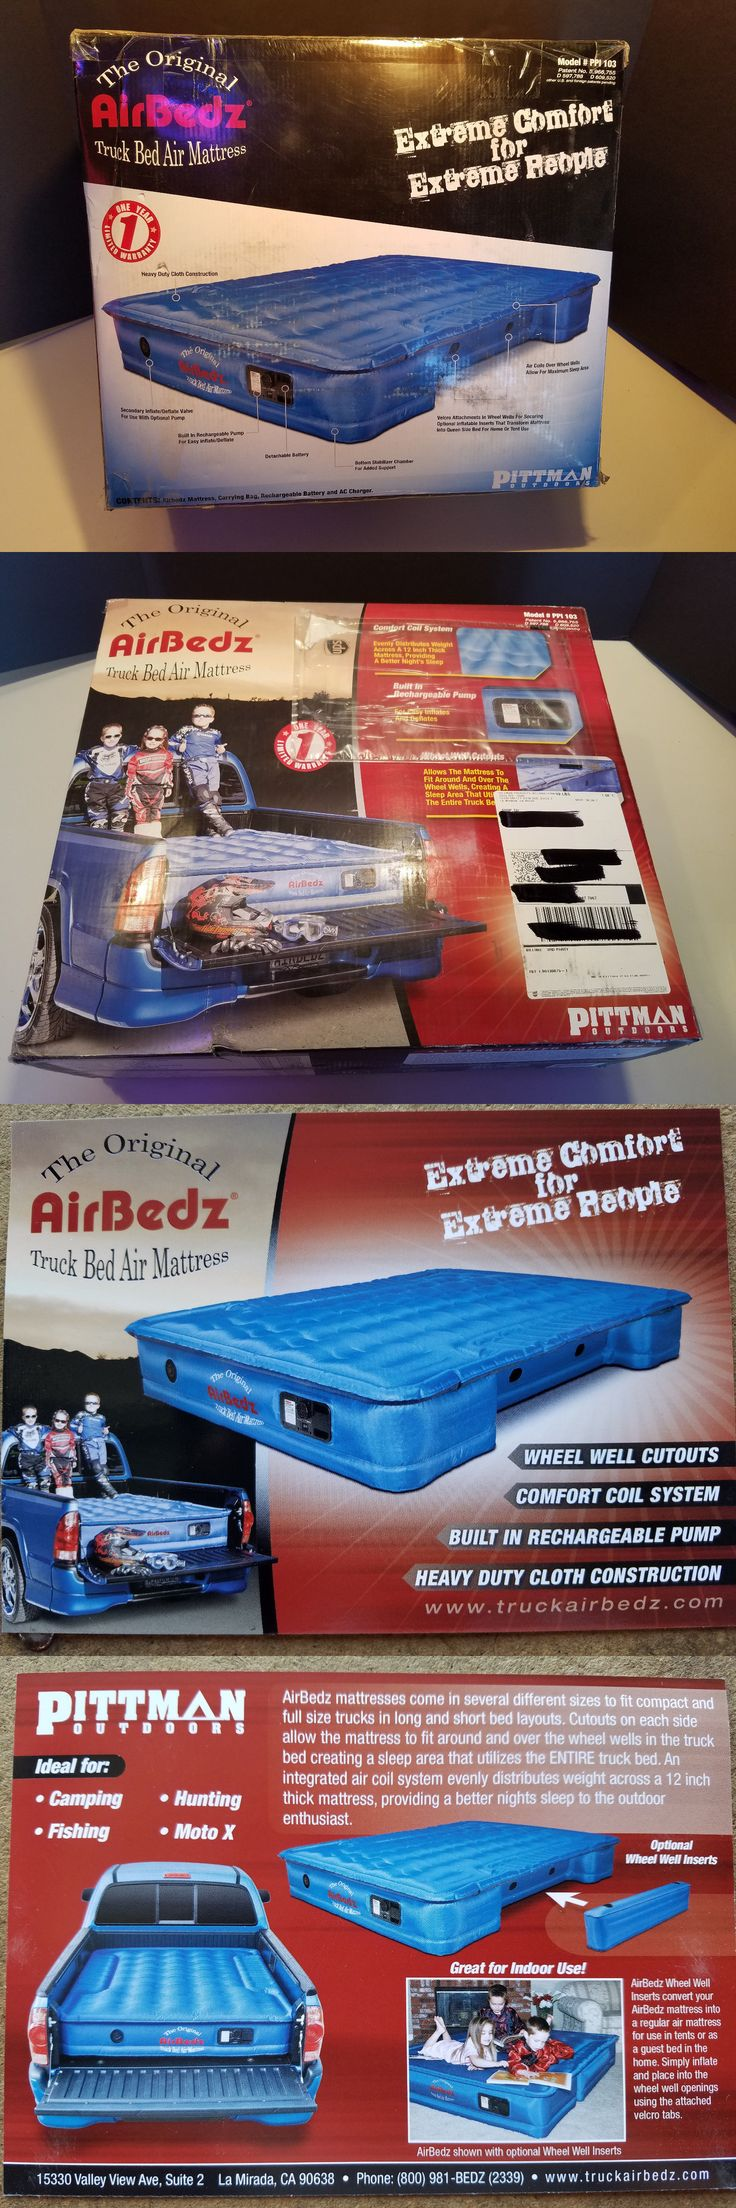 Mattresses and Pads 36114: New In Box Airbedz Inflatable Truck Bed Camping Air Mattress Model Ppi 103 -> BUY IT NOW ONLY: $80 on eBay!